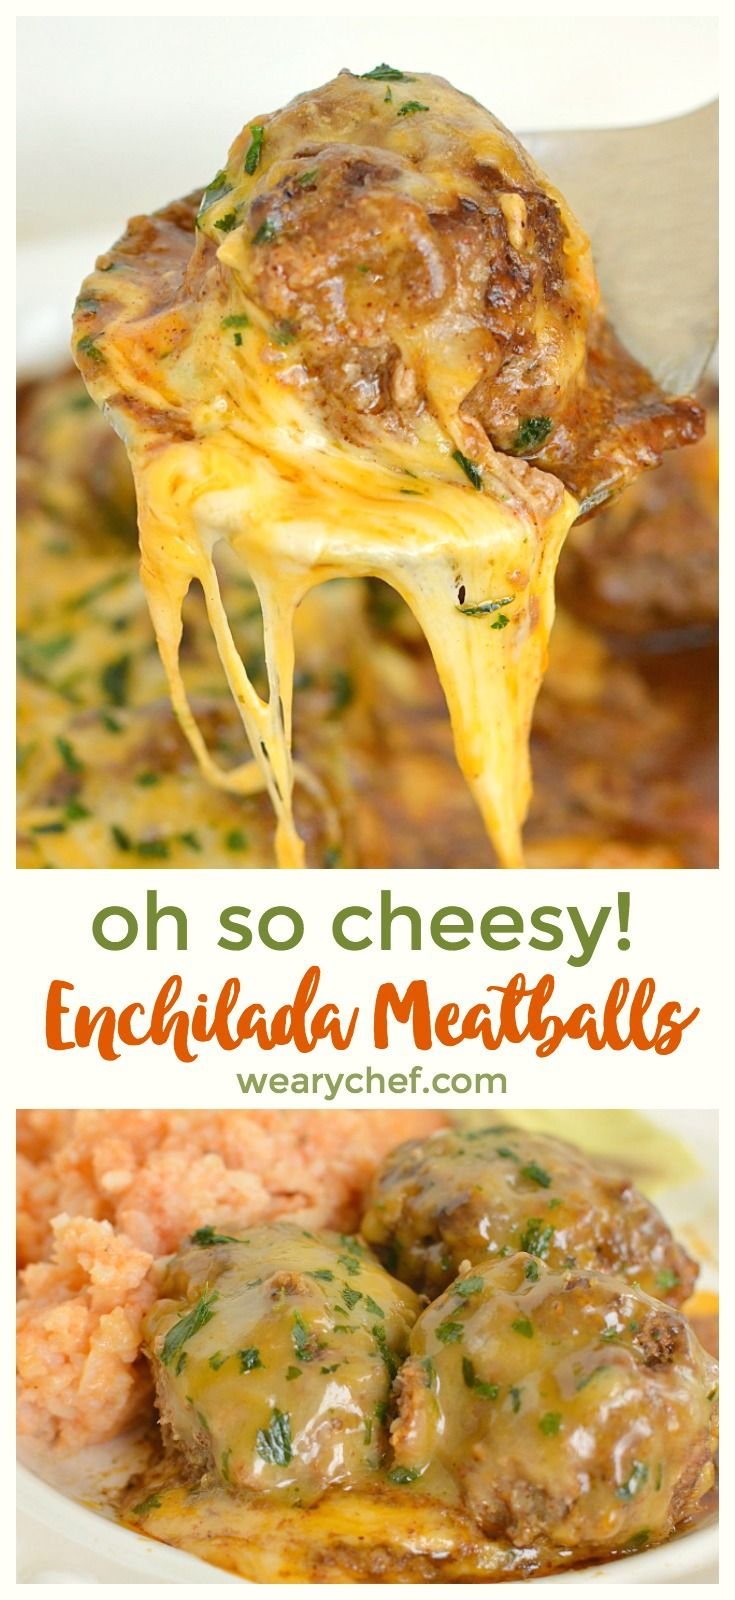 Cheesy Mexican Meatballs - The Weary Chef #mexicandishes